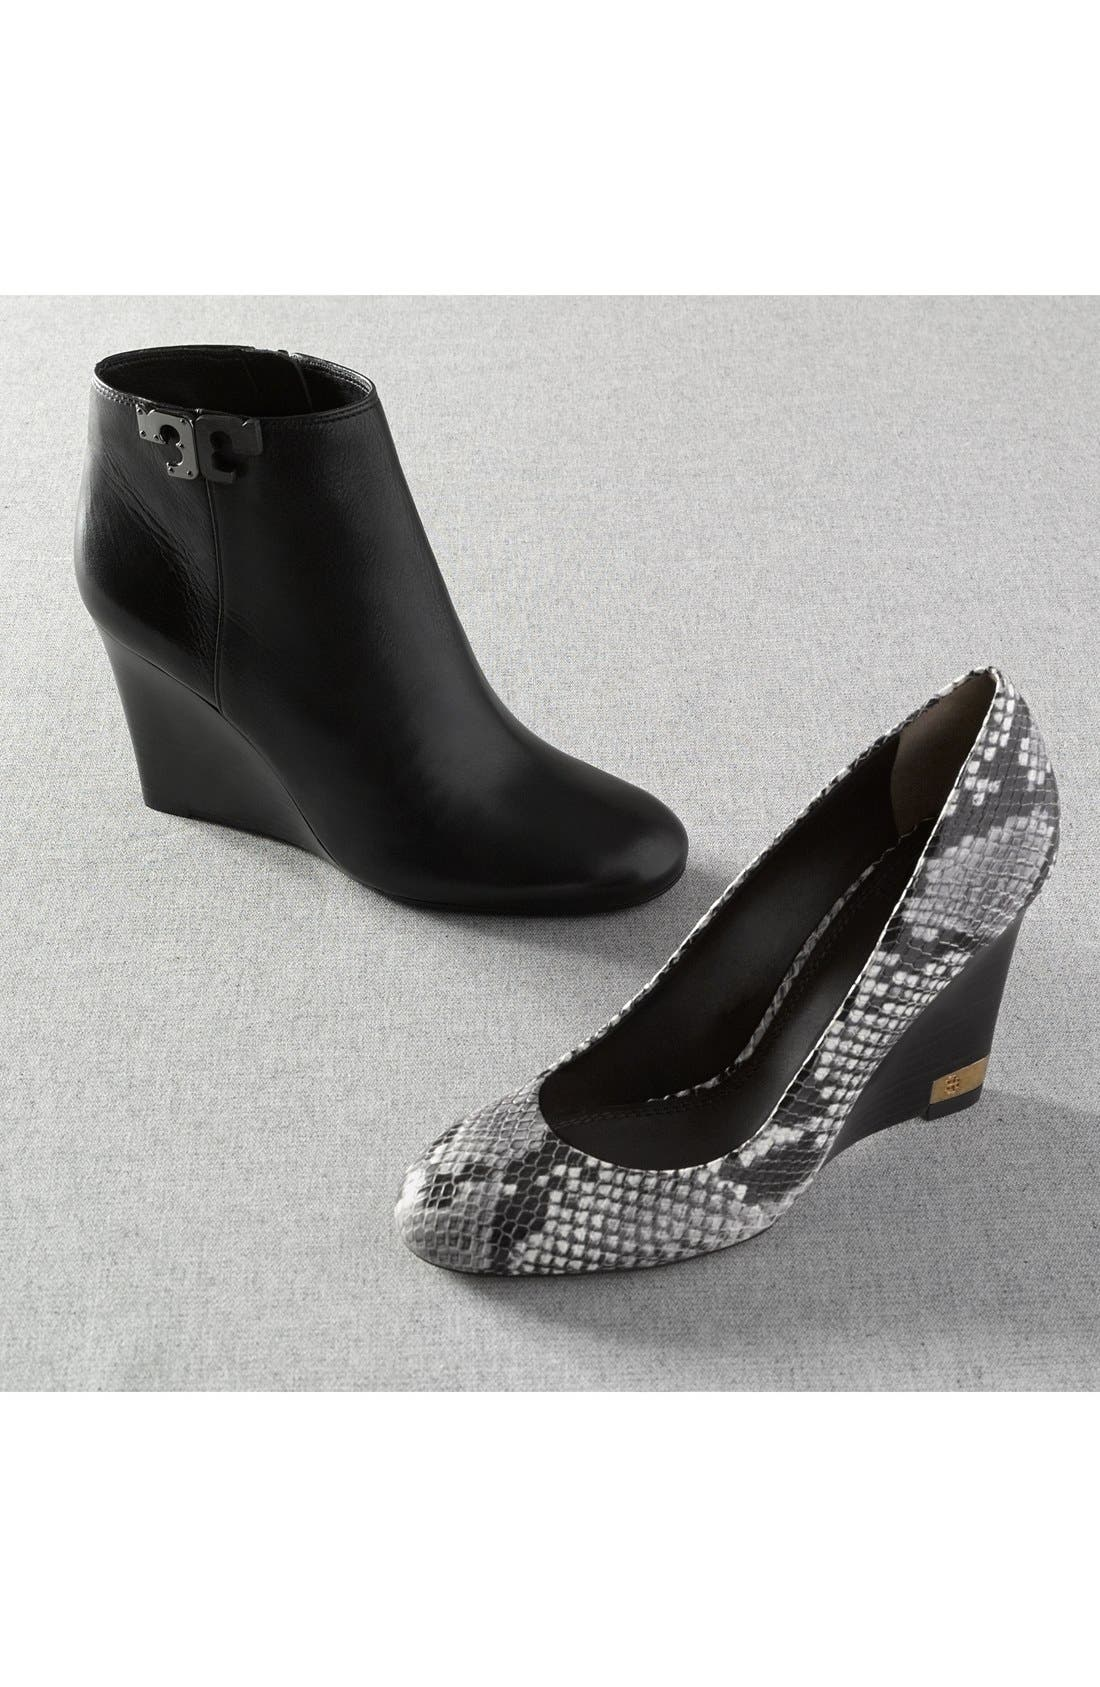 'Lowell' Wedge Bootie,                             Alternate thumbnail 5, color,